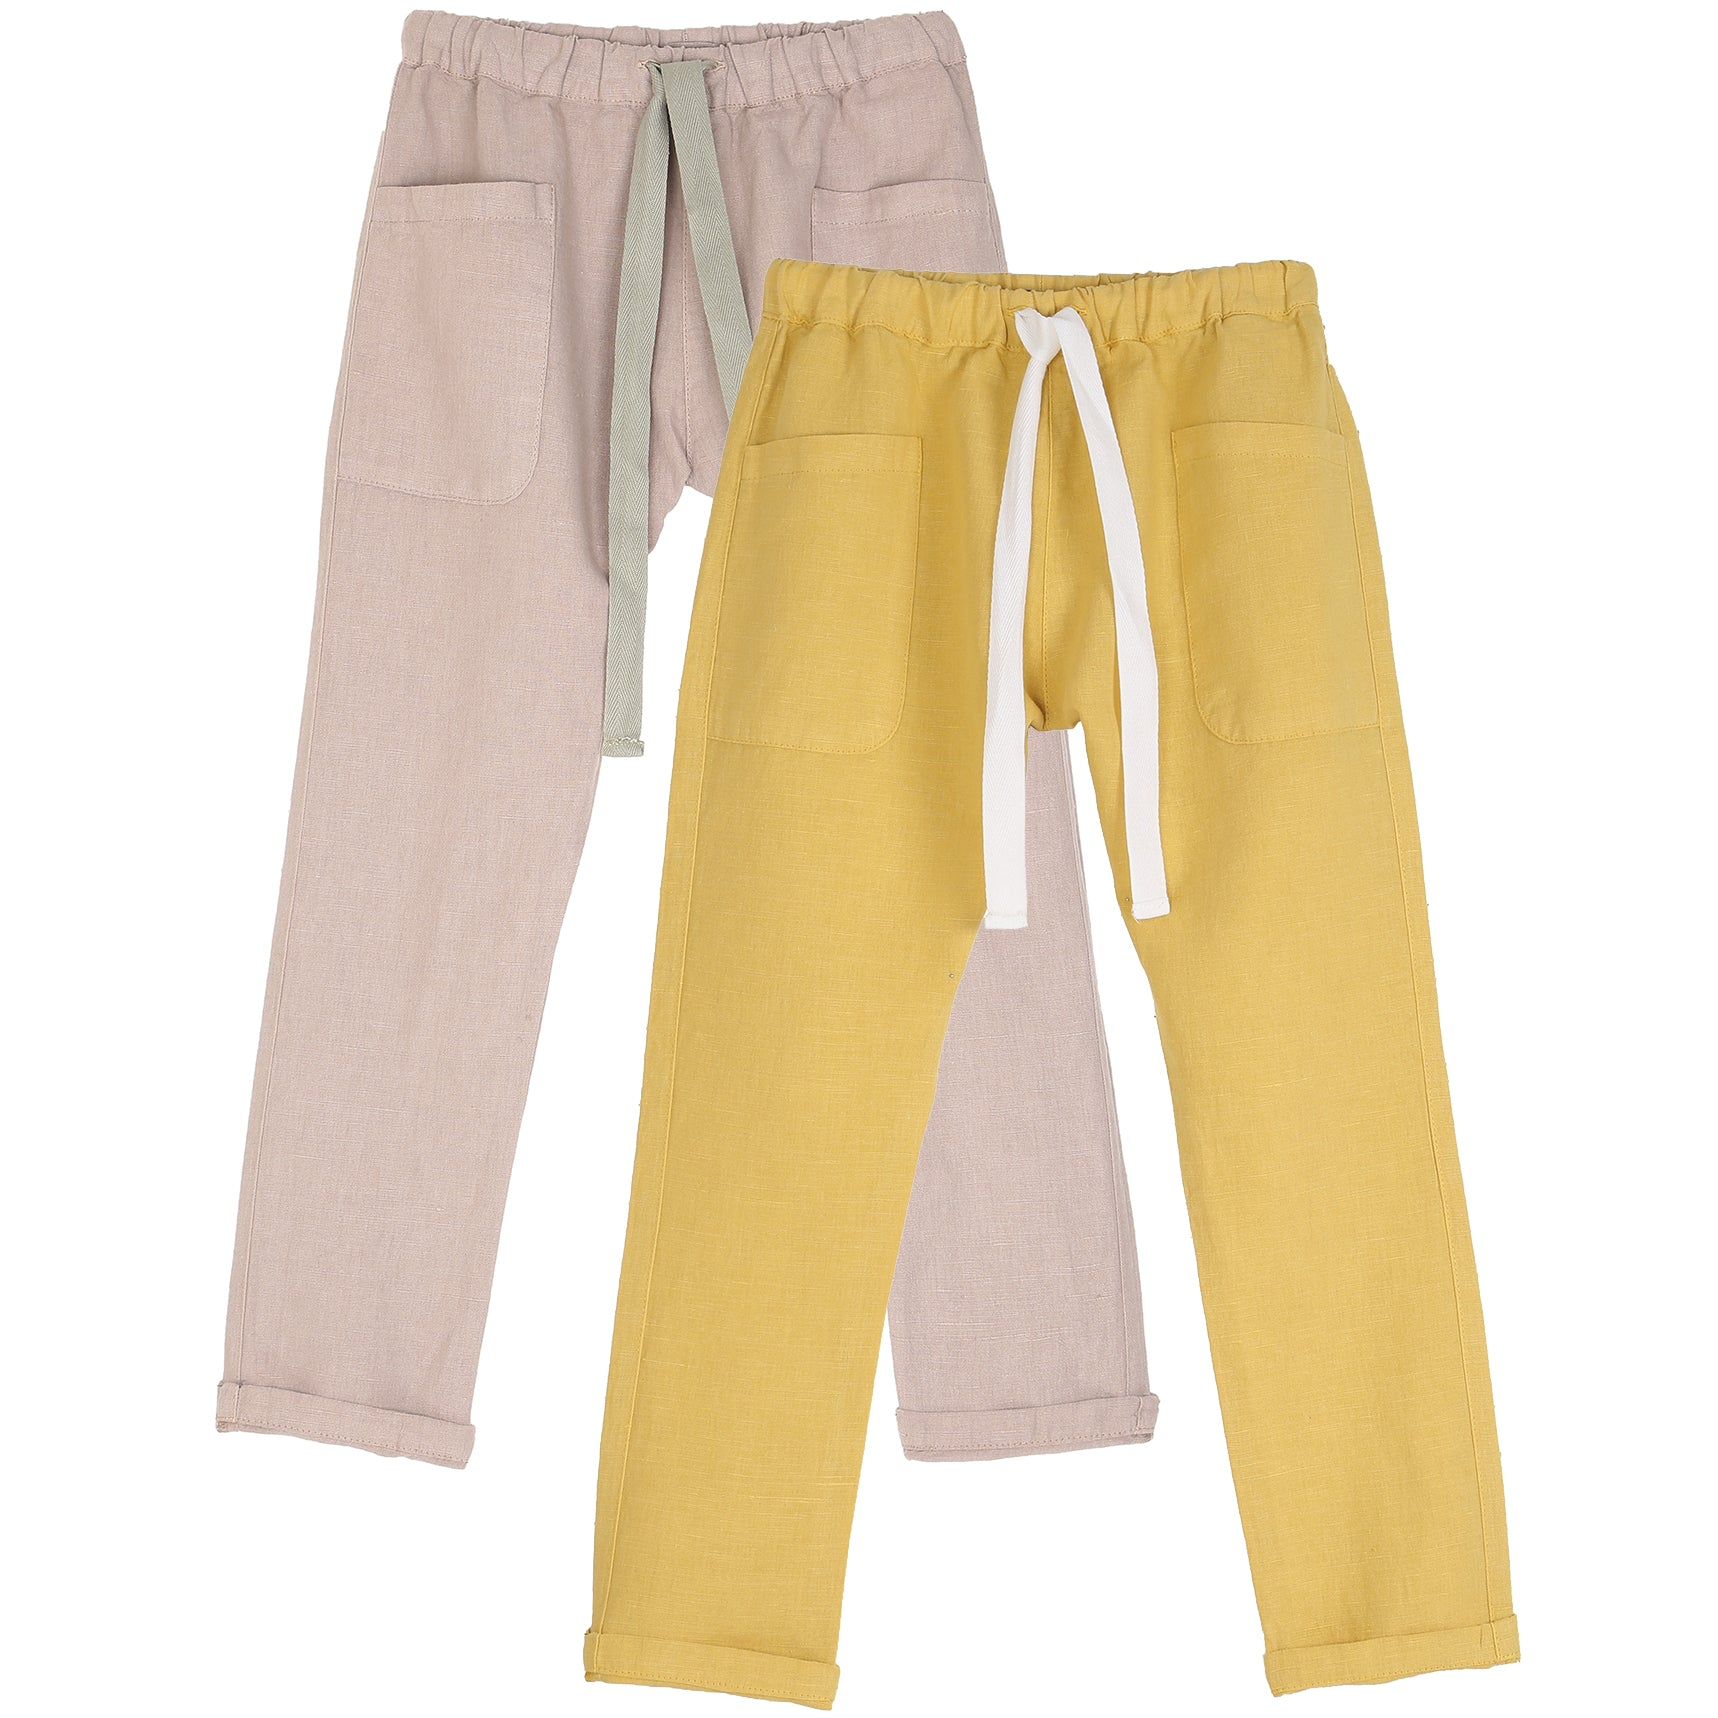 yoya, kids, boys, girls, emile et ida, lightweight, linen, summer, drawstring, pants